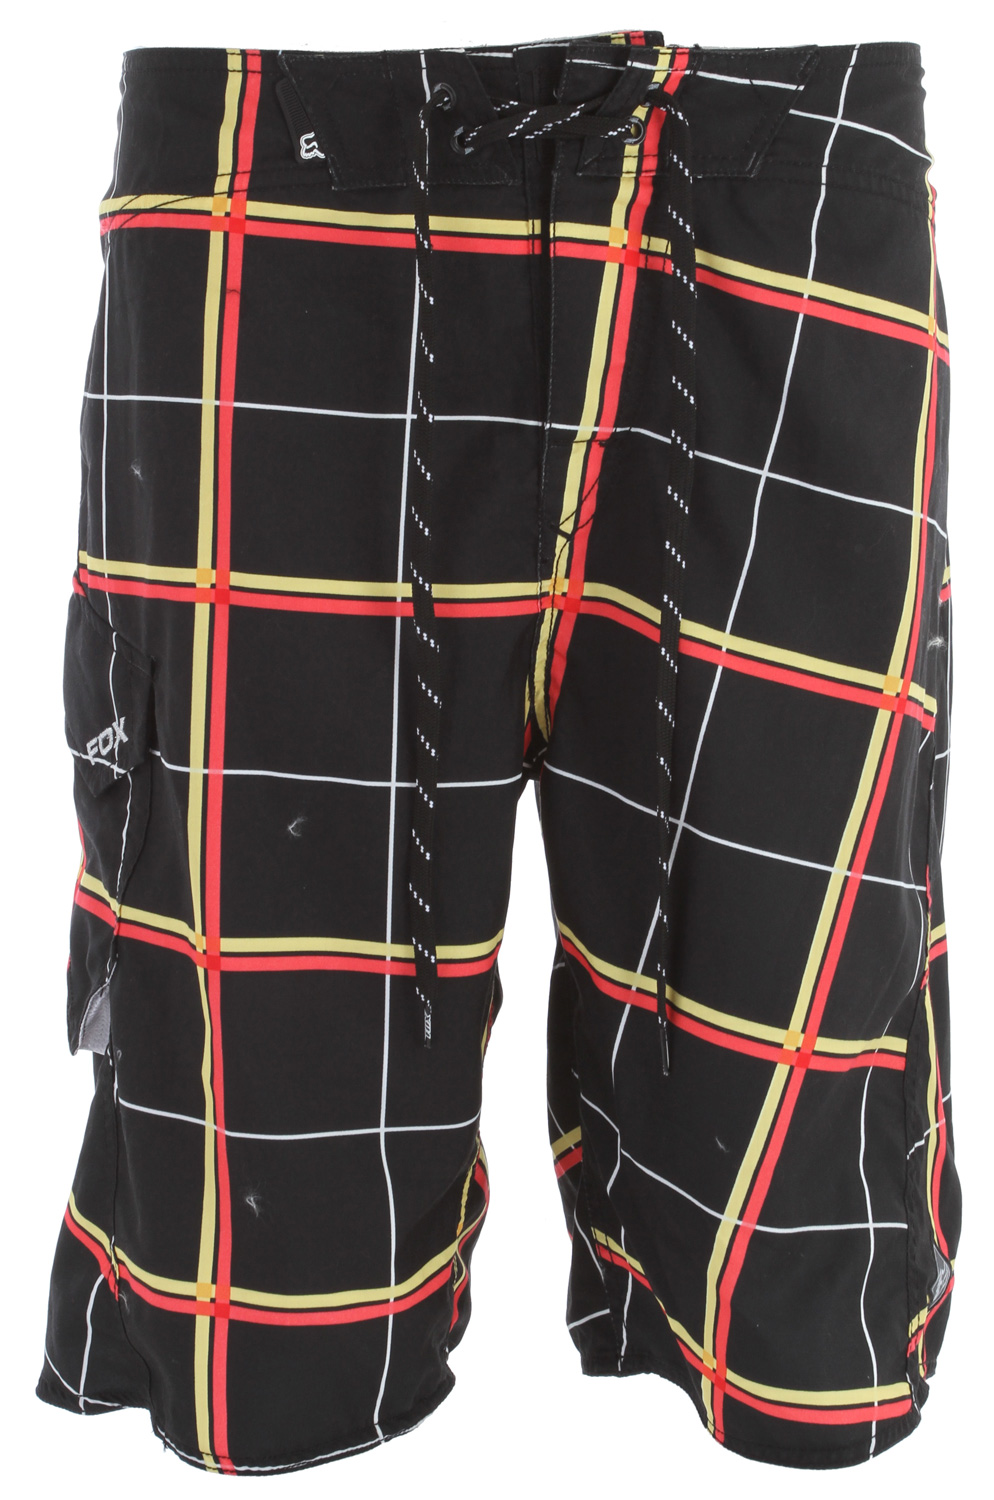 "Surf Key Features of the Fox Lloyd Plaid Boardshorts: 100% polyester microsuede All over sublimated graphics Fox embroidery at pocket flap Side pocket with mesh below Velcro fly 22 1/2"" outseam - $34.95"